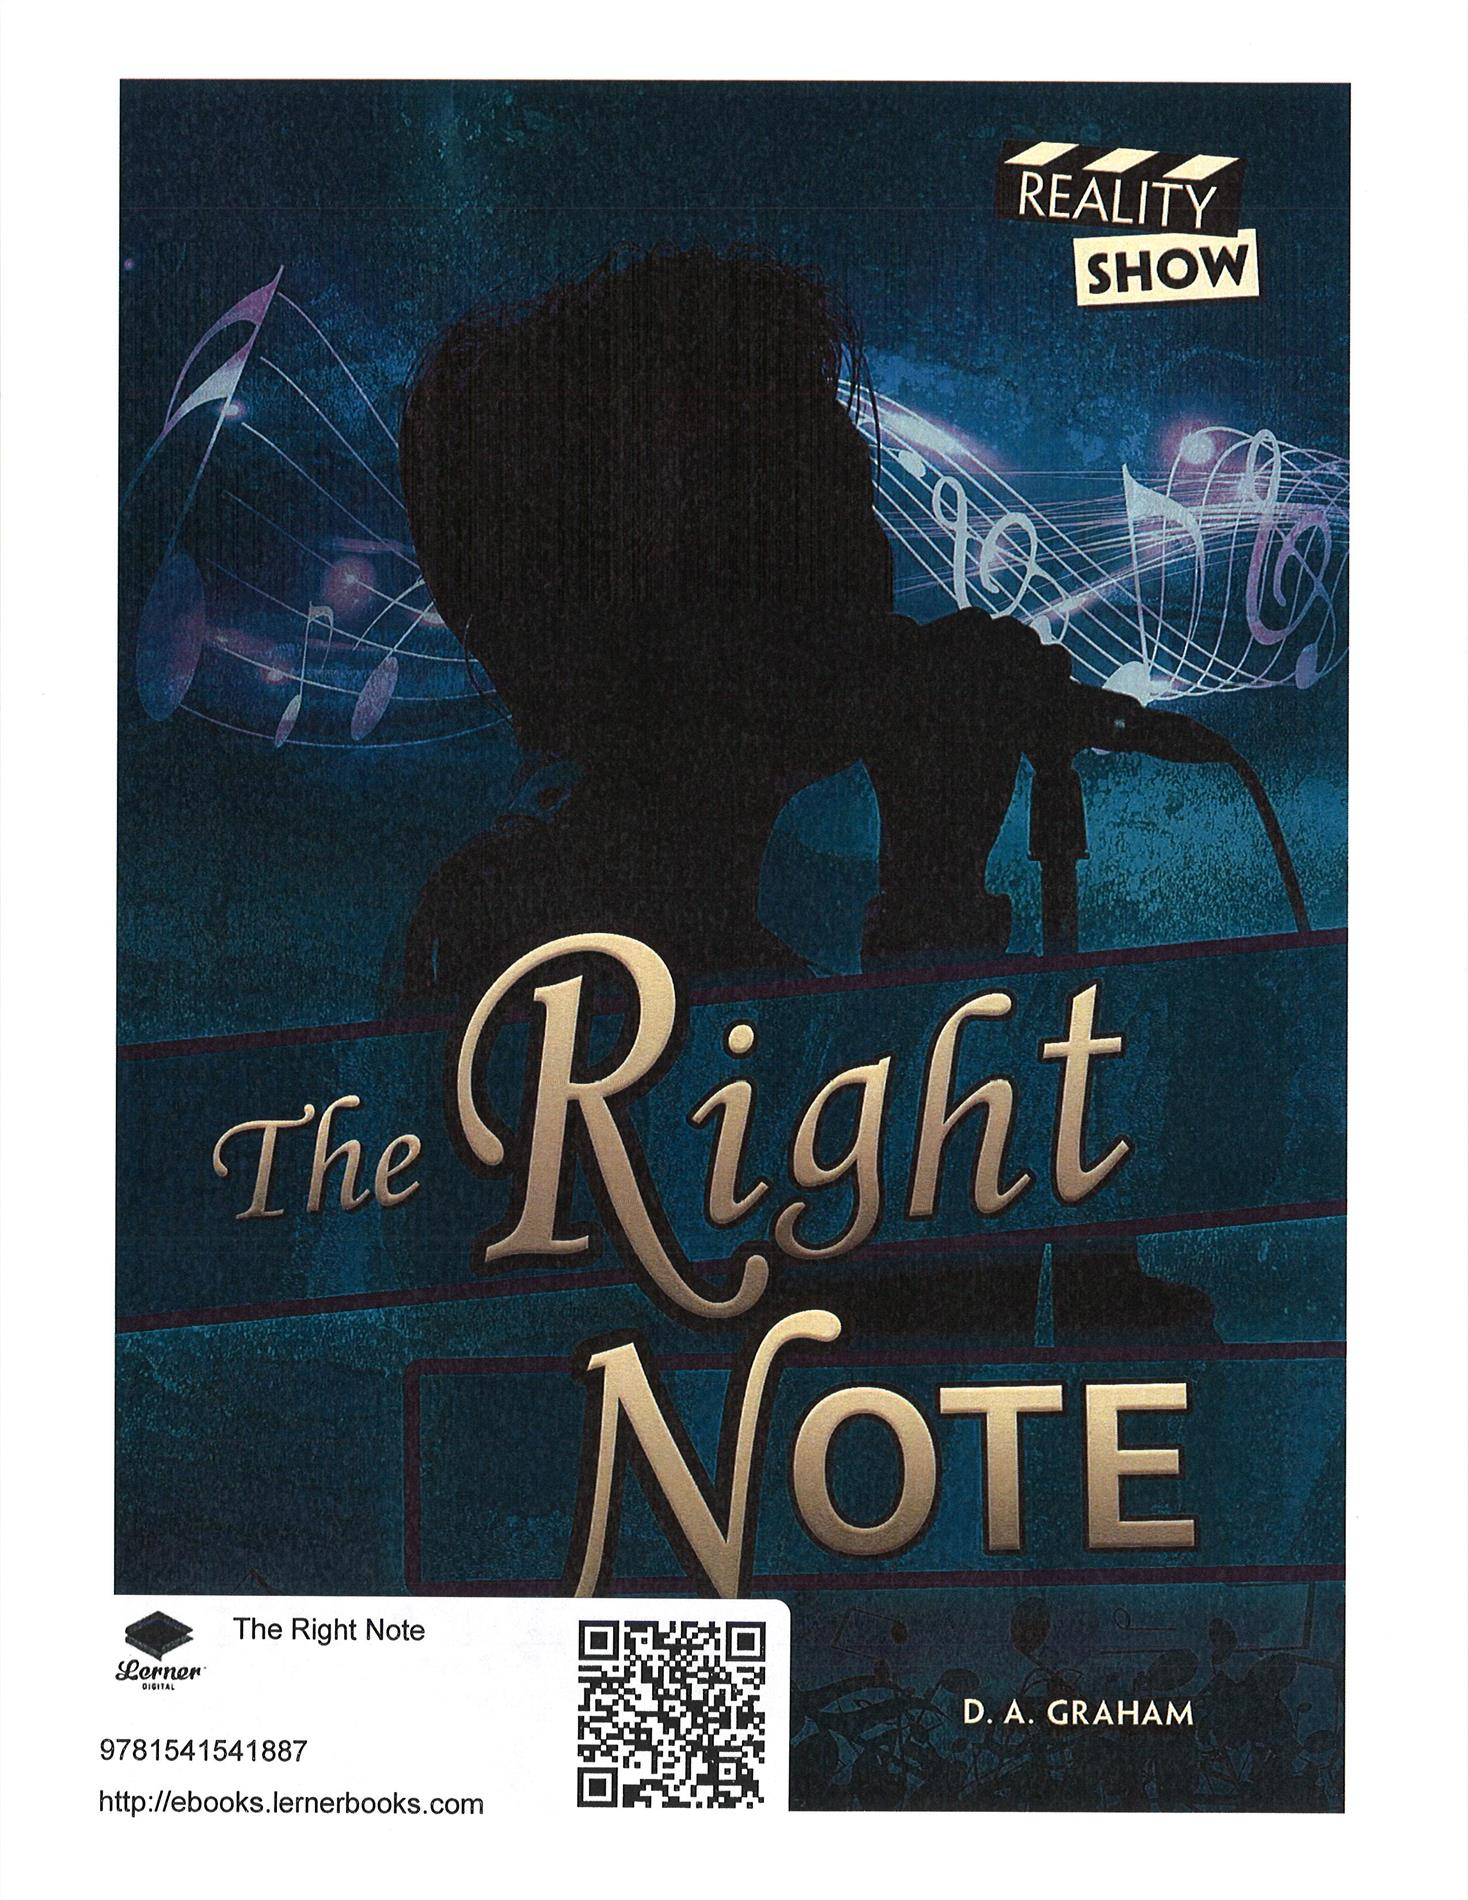 The Right Note